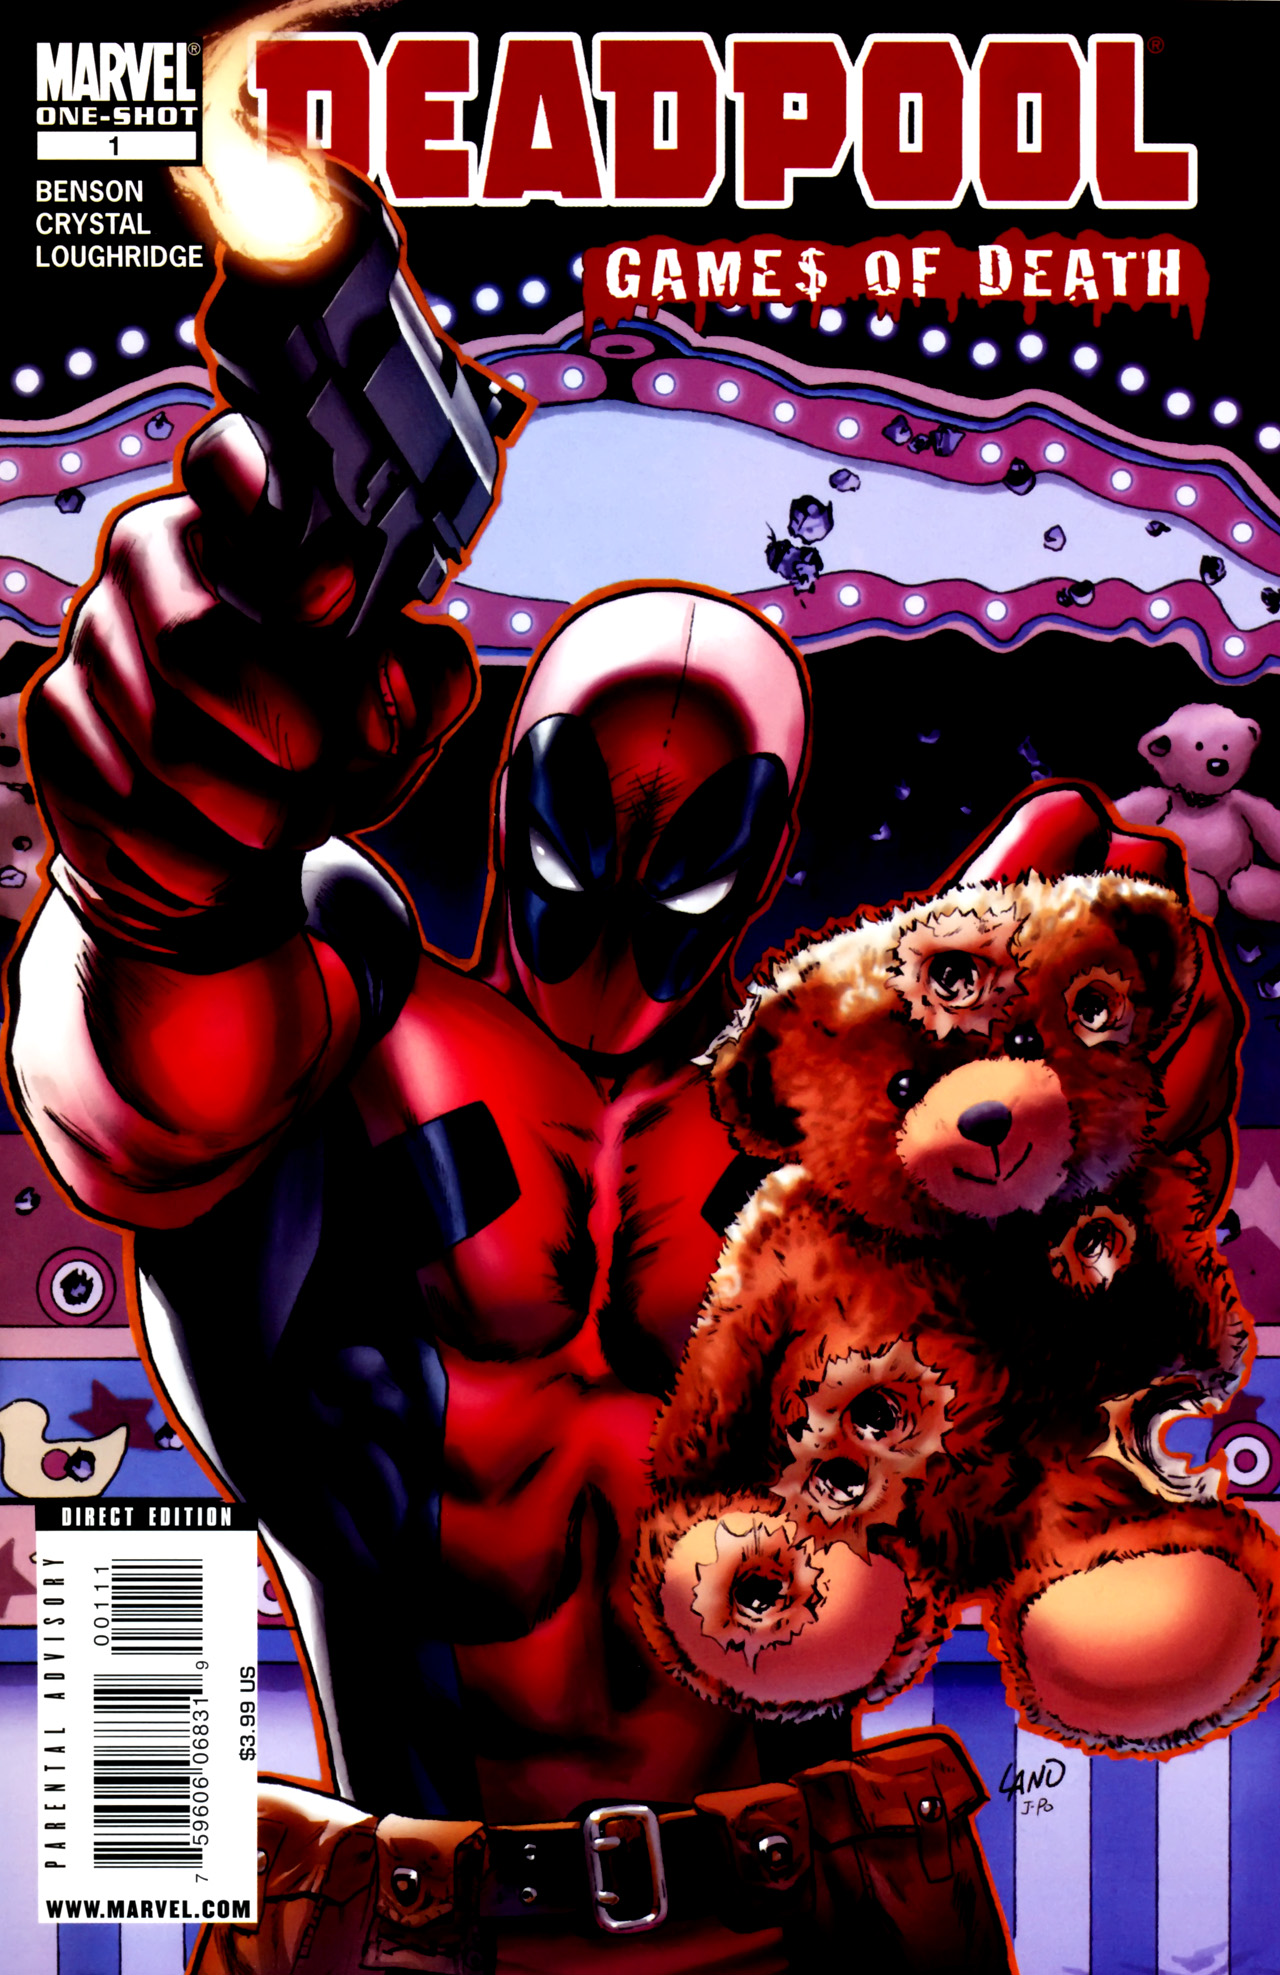 Deadpool: Games of Death Full Page 1